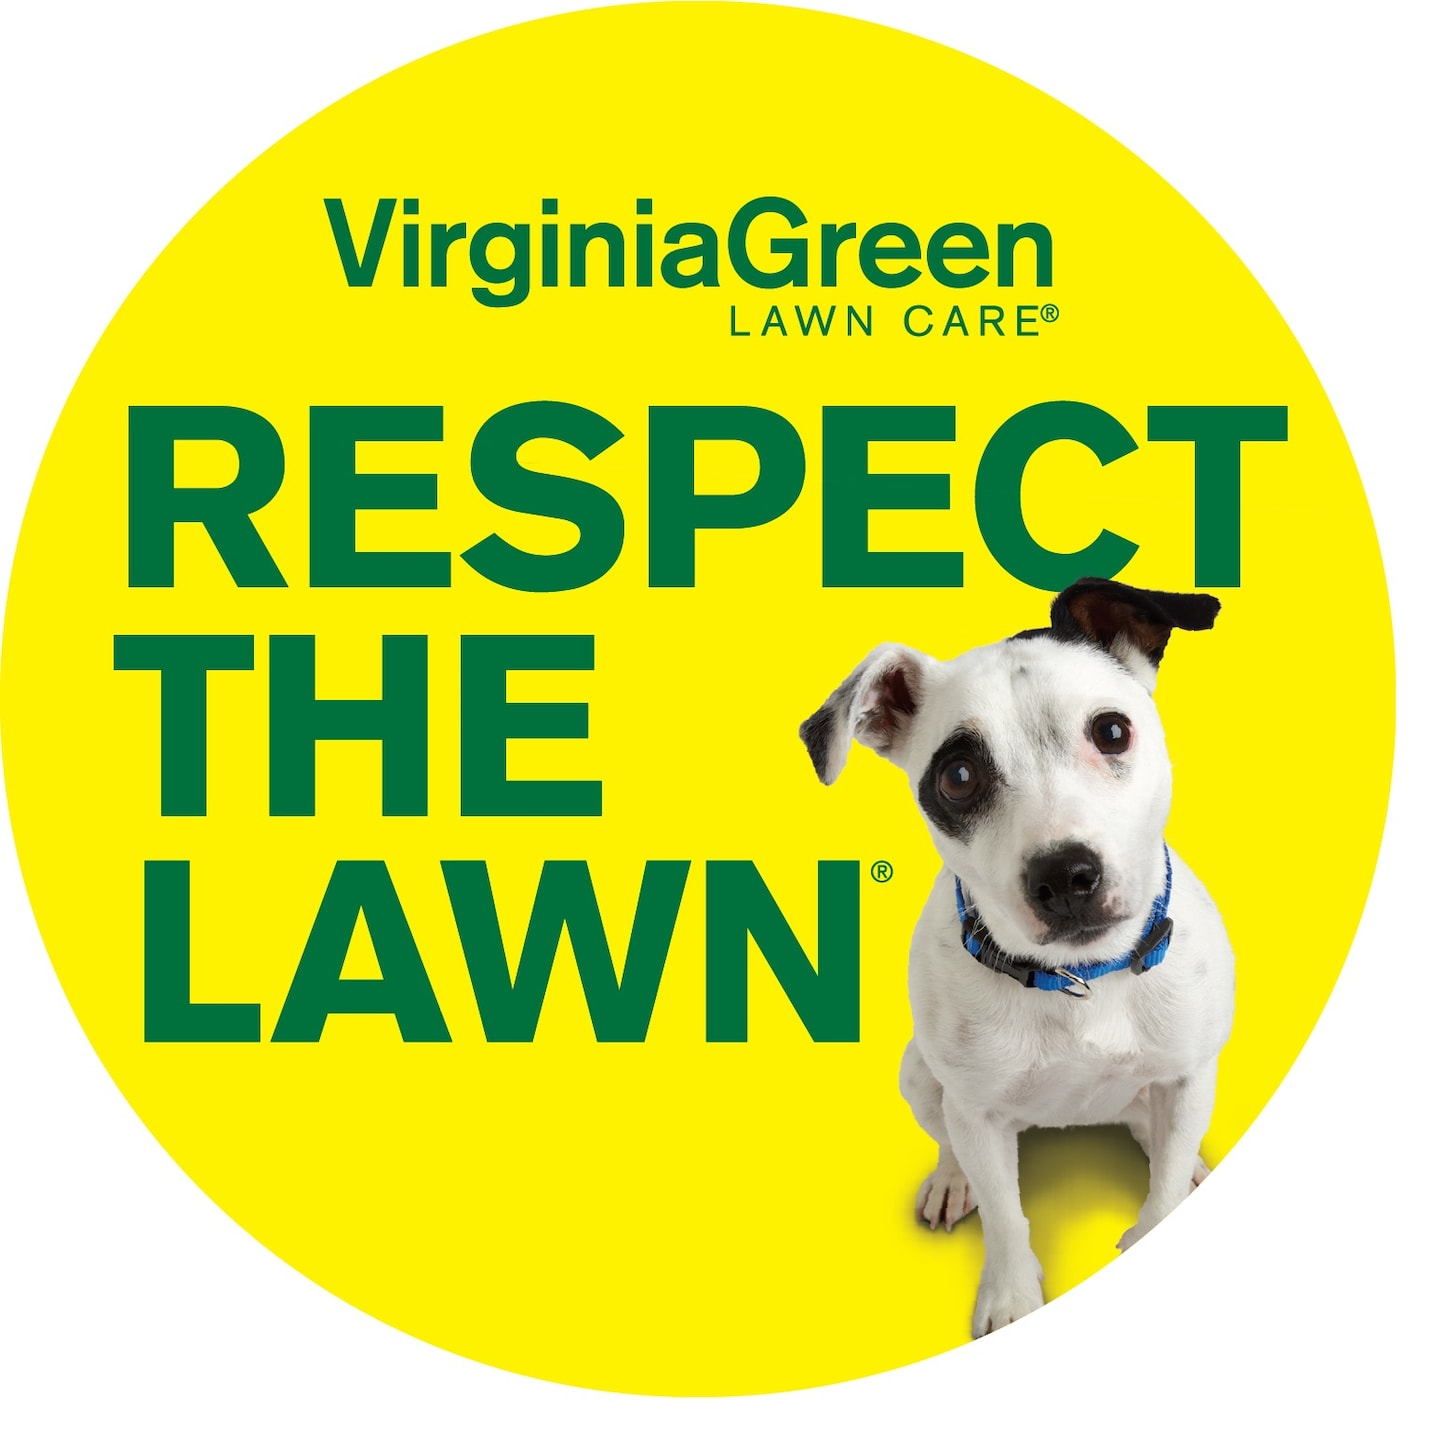 Virginia Green Lawn Care